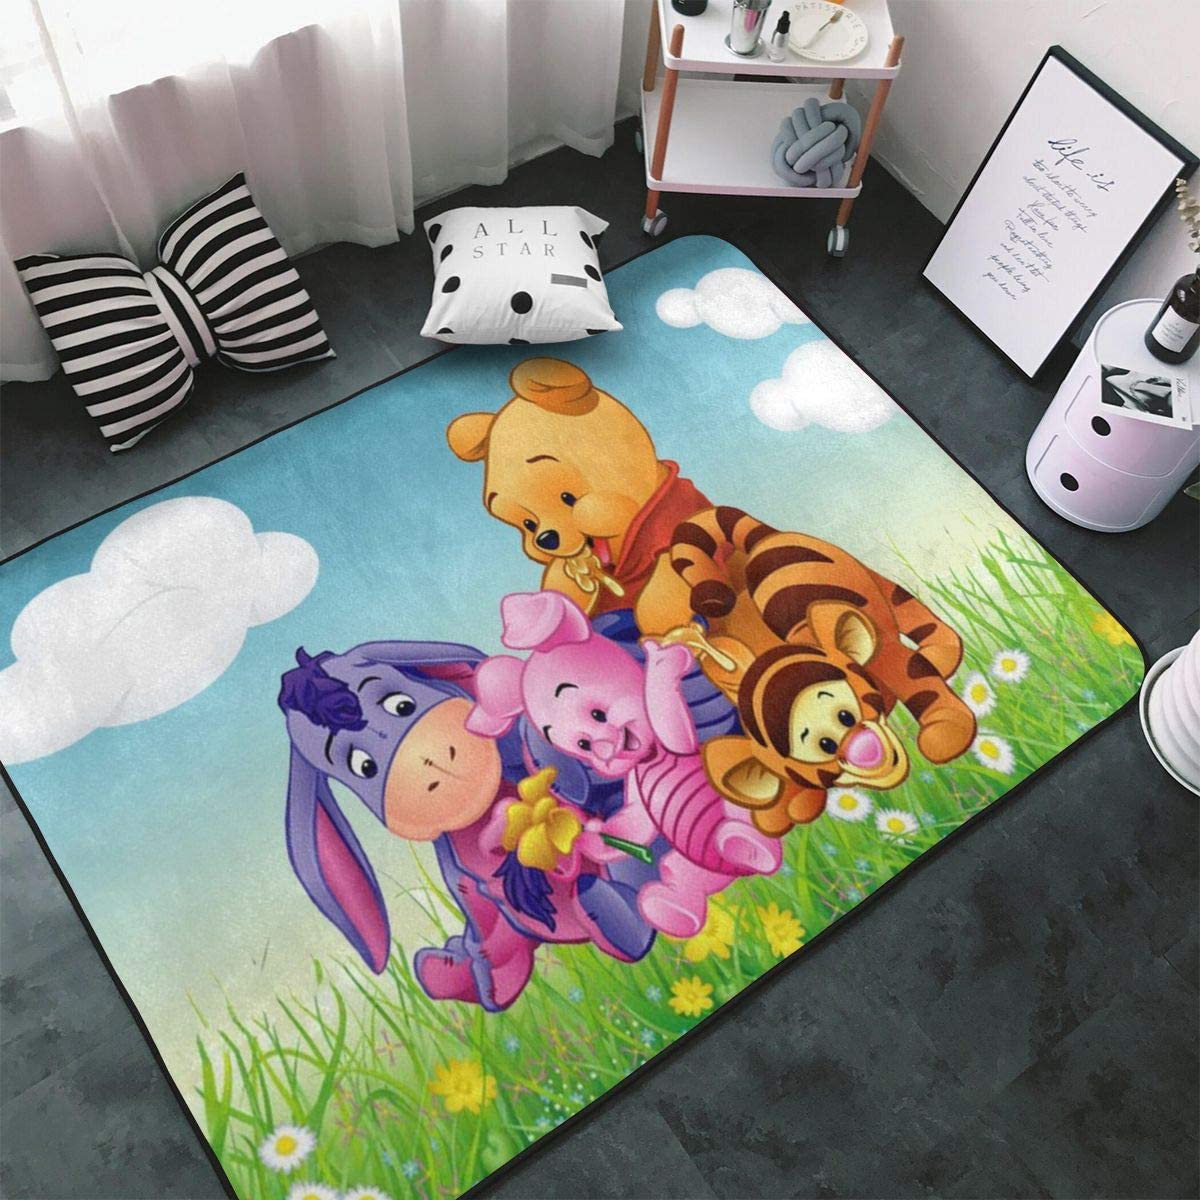 """Win-Nie The Pooh Non-Slip Area Rugs Fluffy Machine Washable Carpets 63"""""""" X 48"""""""" Suitable for Children Bedroom, Office Coffee Table Balcony Home Decor Rugs"""